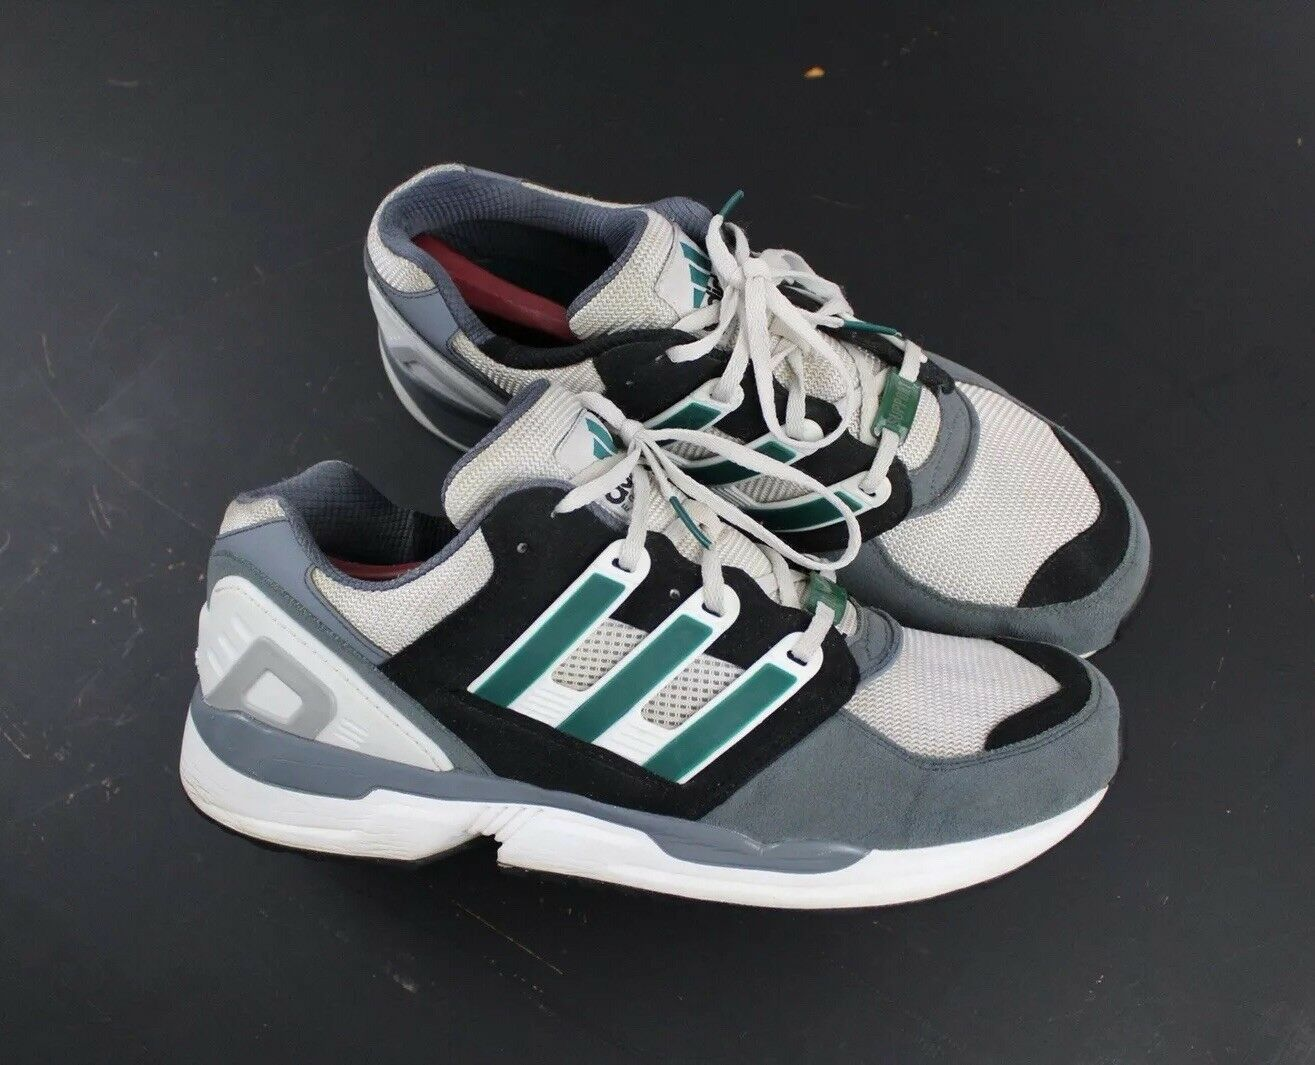 90ea998c79aa8 Adidas Equipment EQT Support Torsion Men s Running shoes shoes shoes OG  Style from 2011 Rare 380040